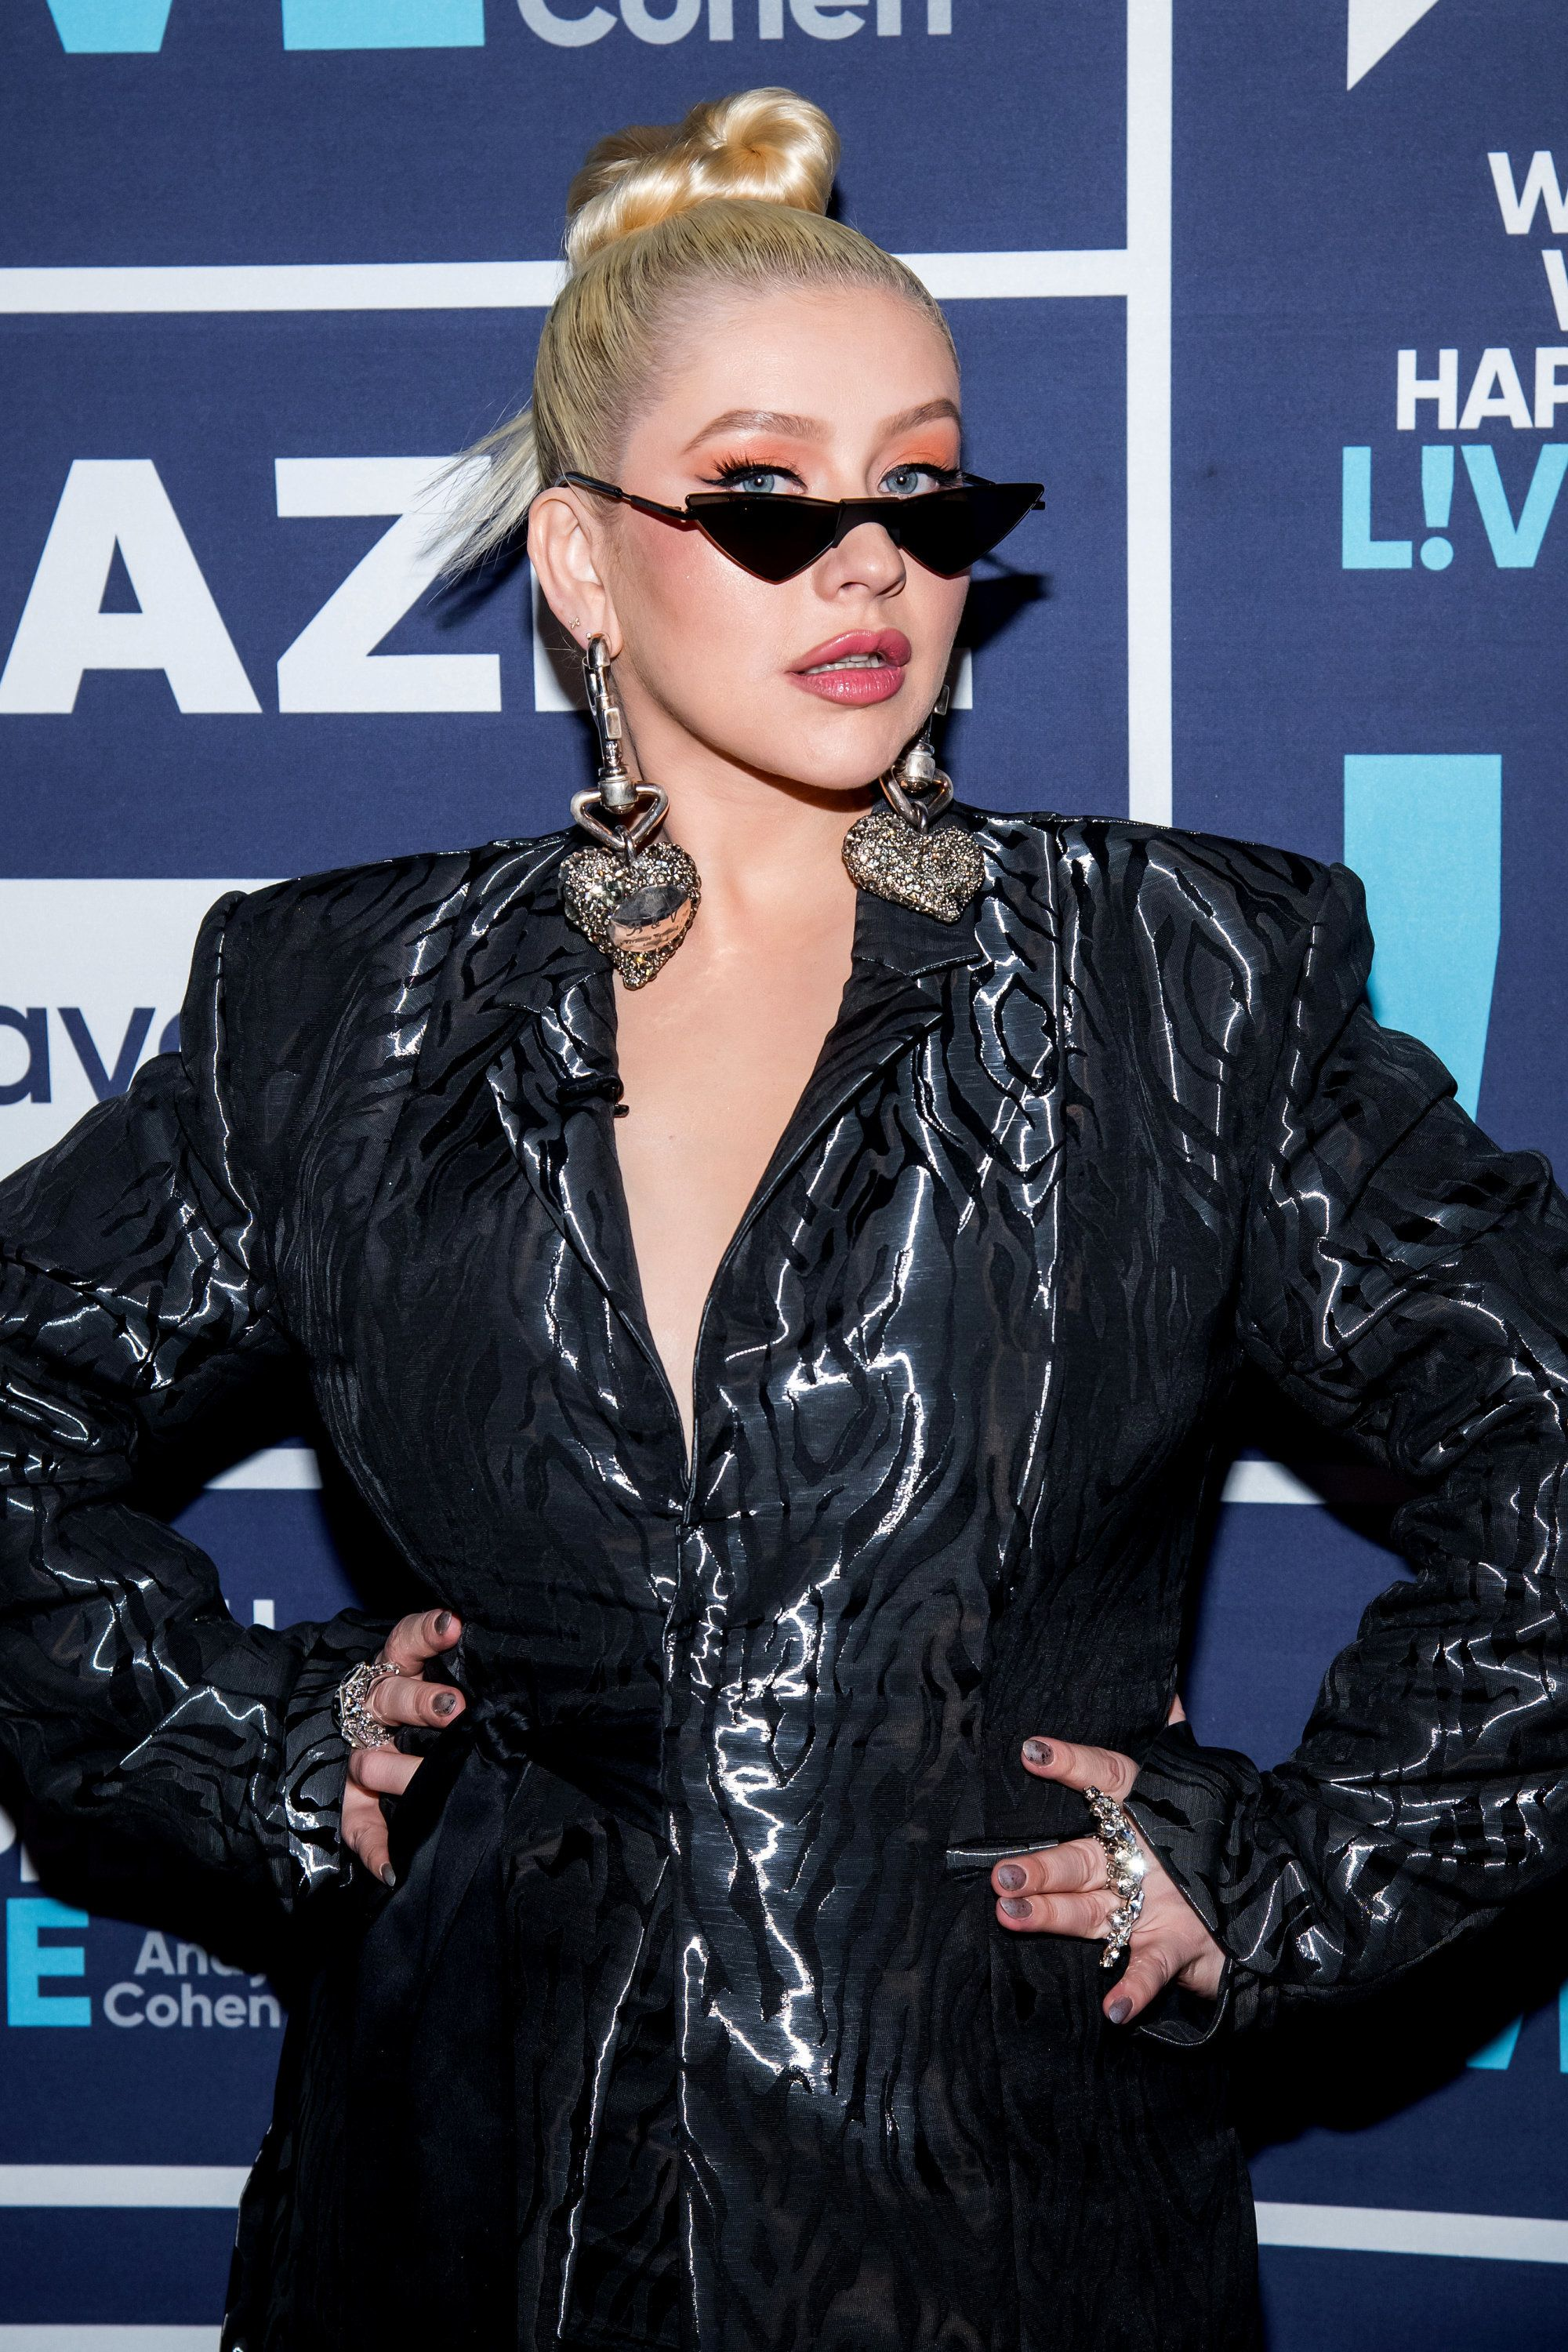 WATCH WHAT HAPPENS LIVE WITH ANDY COHEN -- Pictured: Christina Aguilera -- (Photo by: Charles Sykes/Bravo/NBCU Photo Bank via Getty Images)